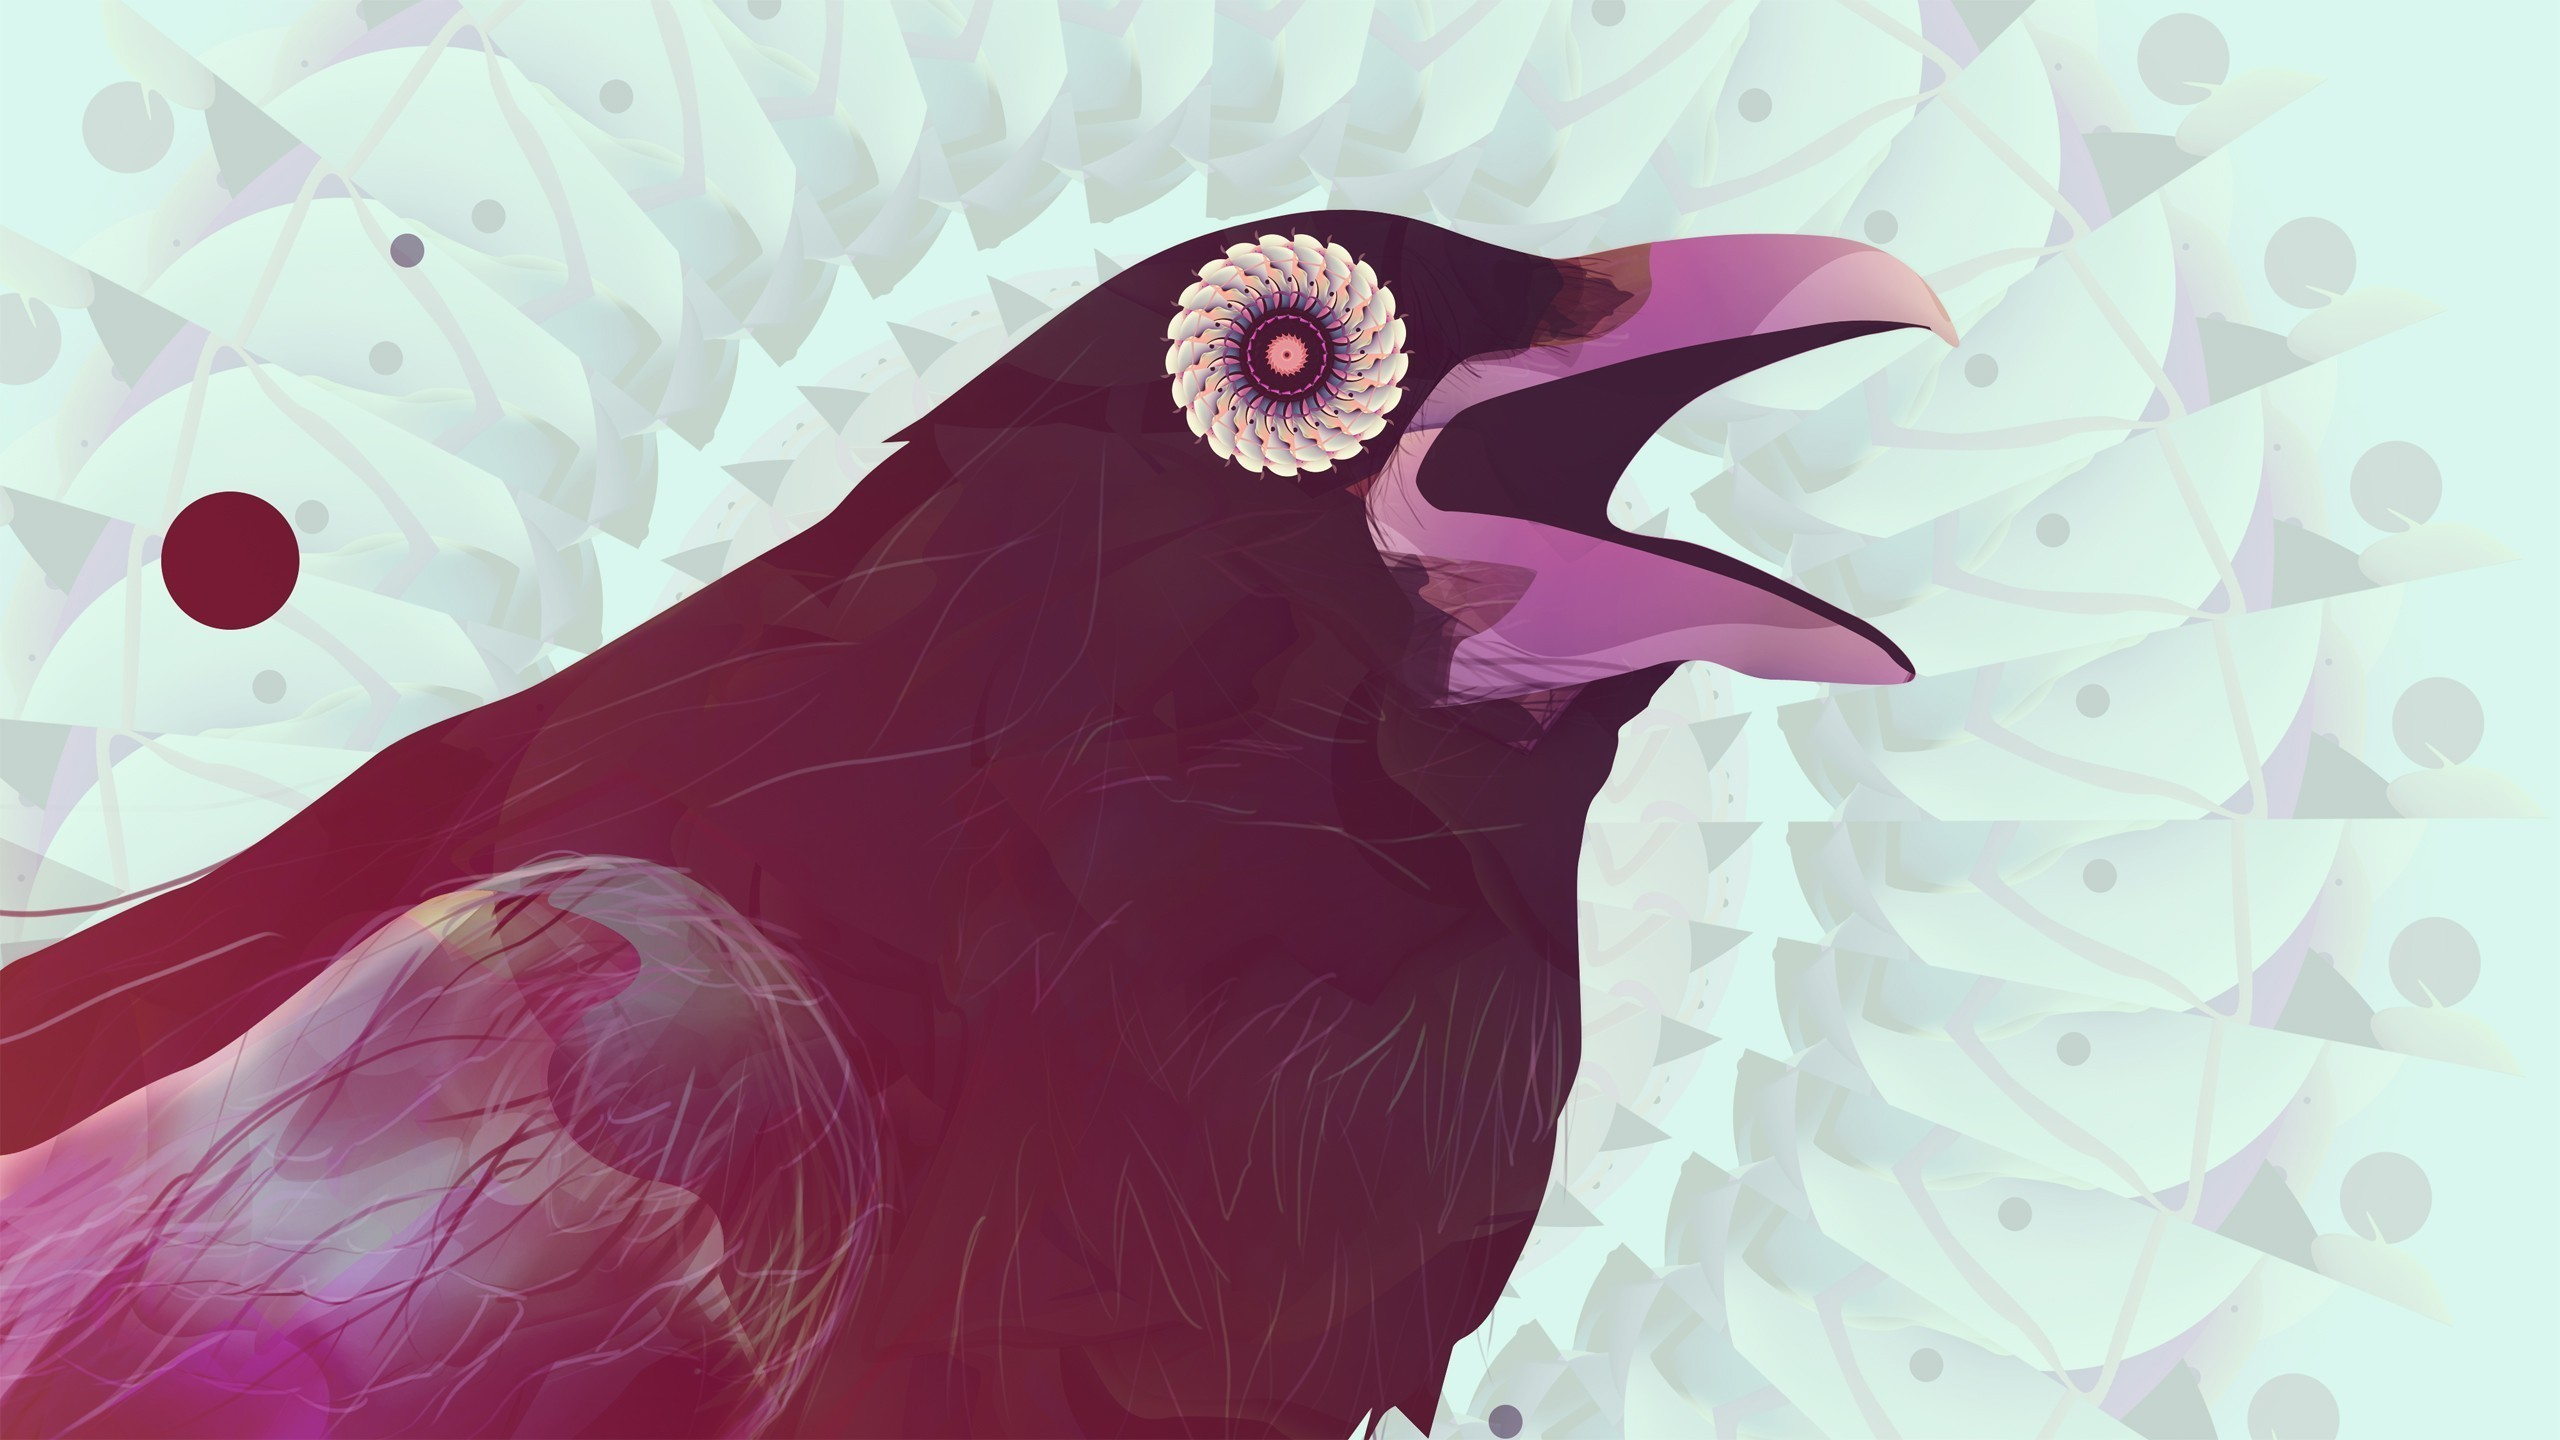 Abstract Birds Animals Digital Art Artwork Crows Ravens Wallpaper